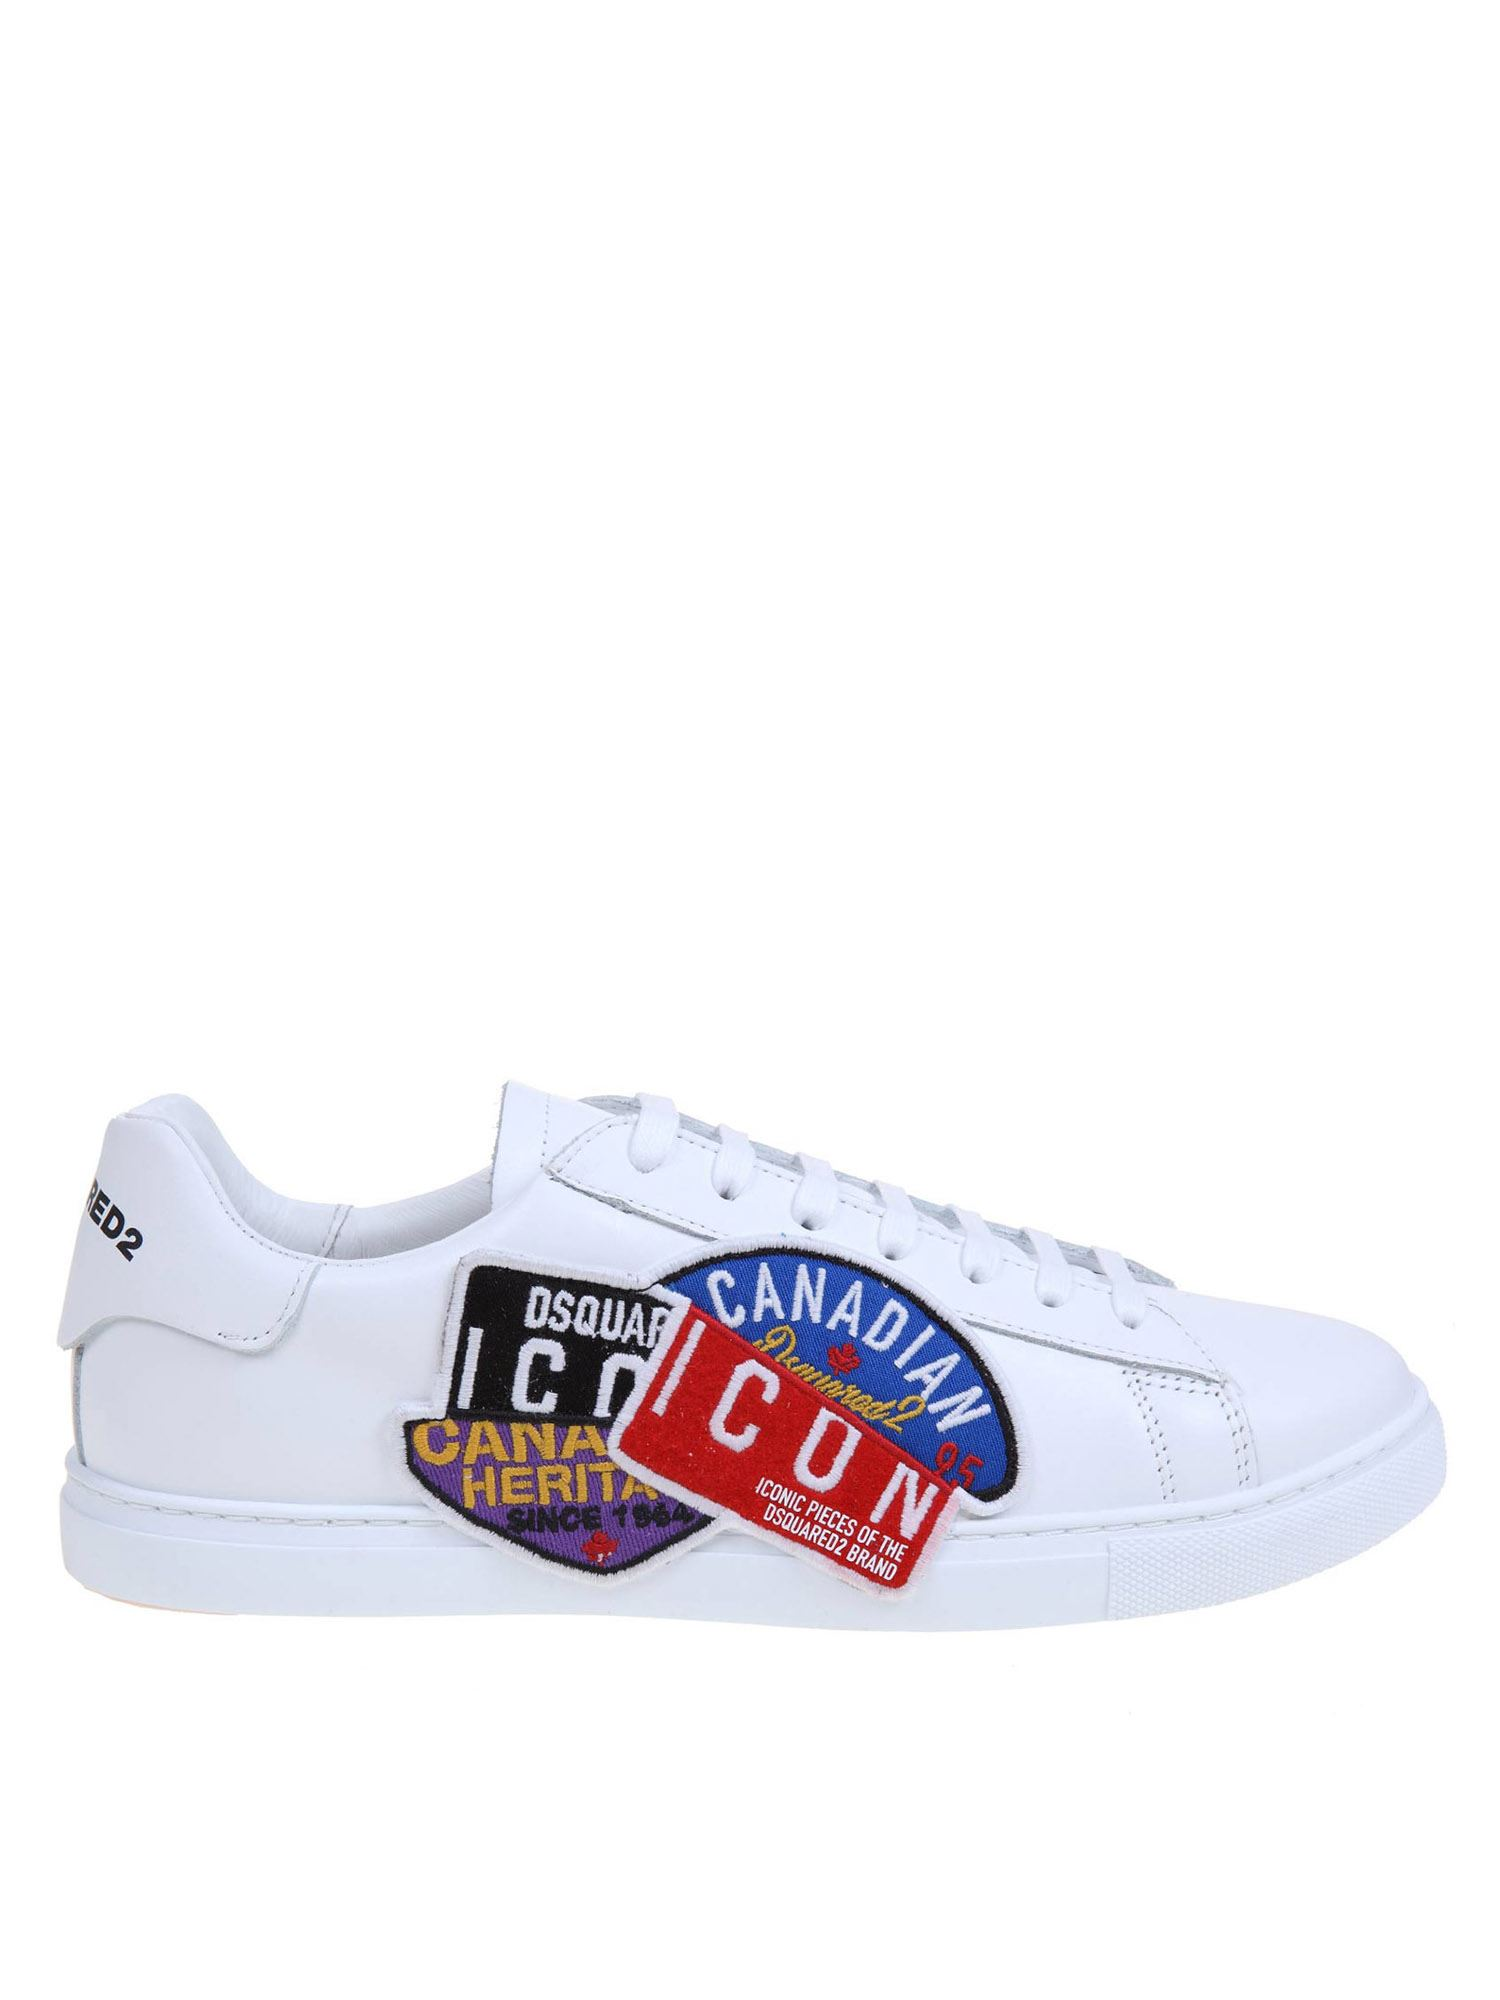 Dsquared2 Leathers NEW TENNIS CANADIAN ICON SNEAKERS IN WHITE